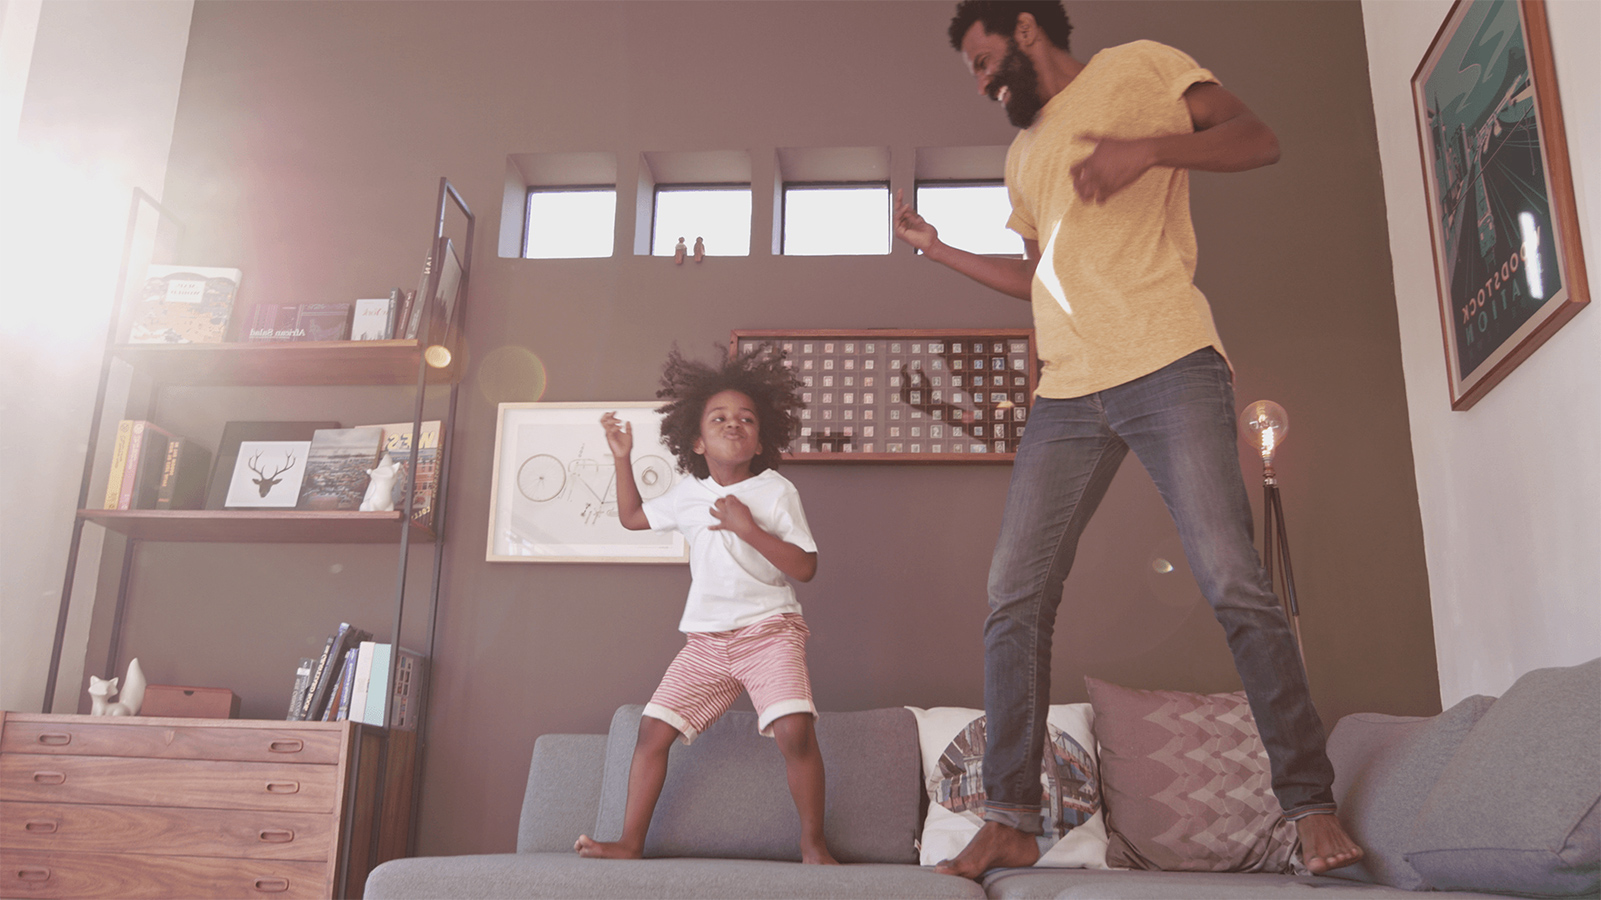 Father and his daughter playing air guitar on the couch.